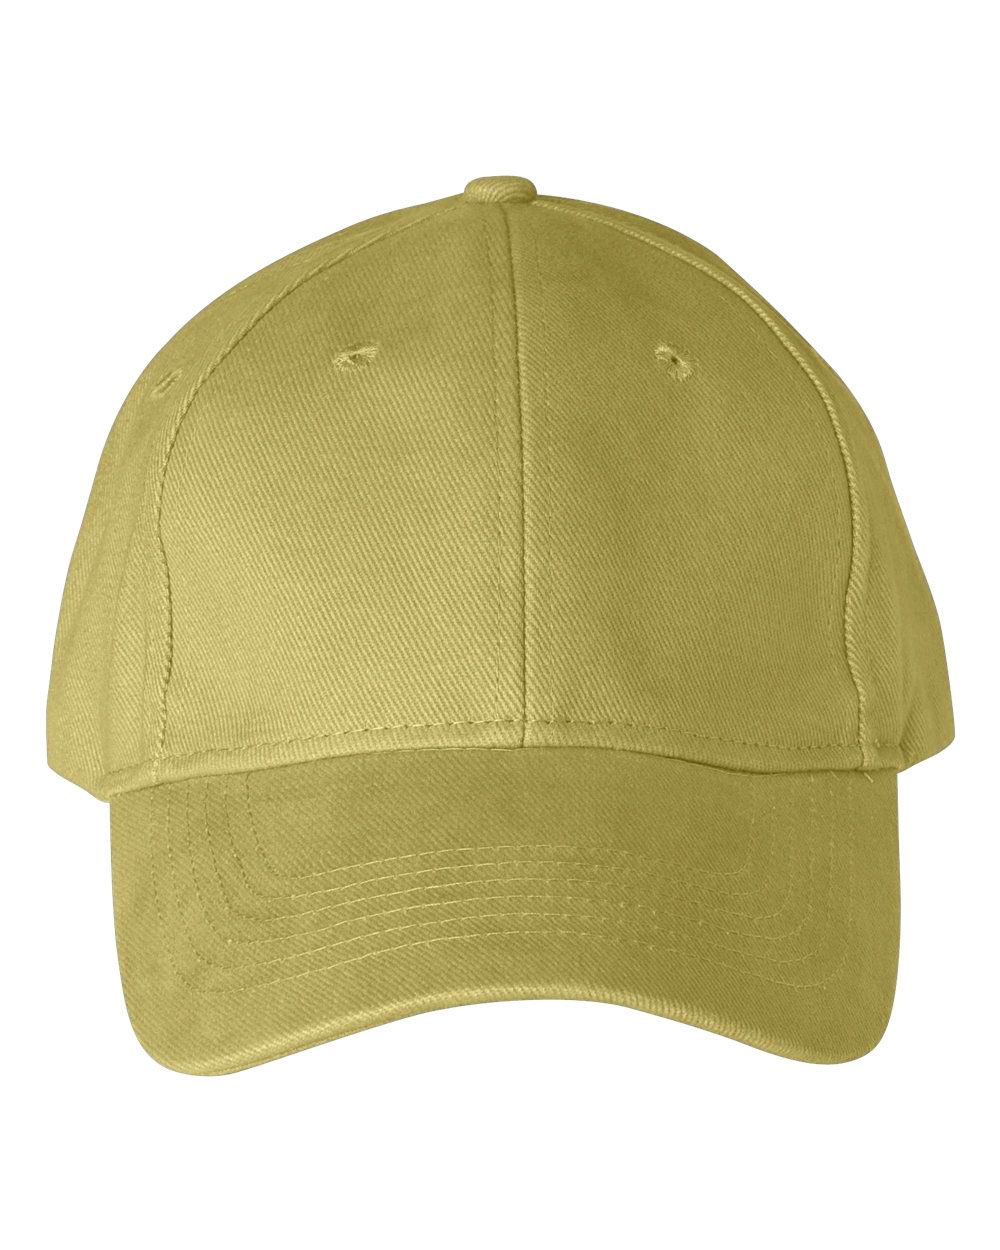 Pro Cotton Cap with Pre-Curved Bill